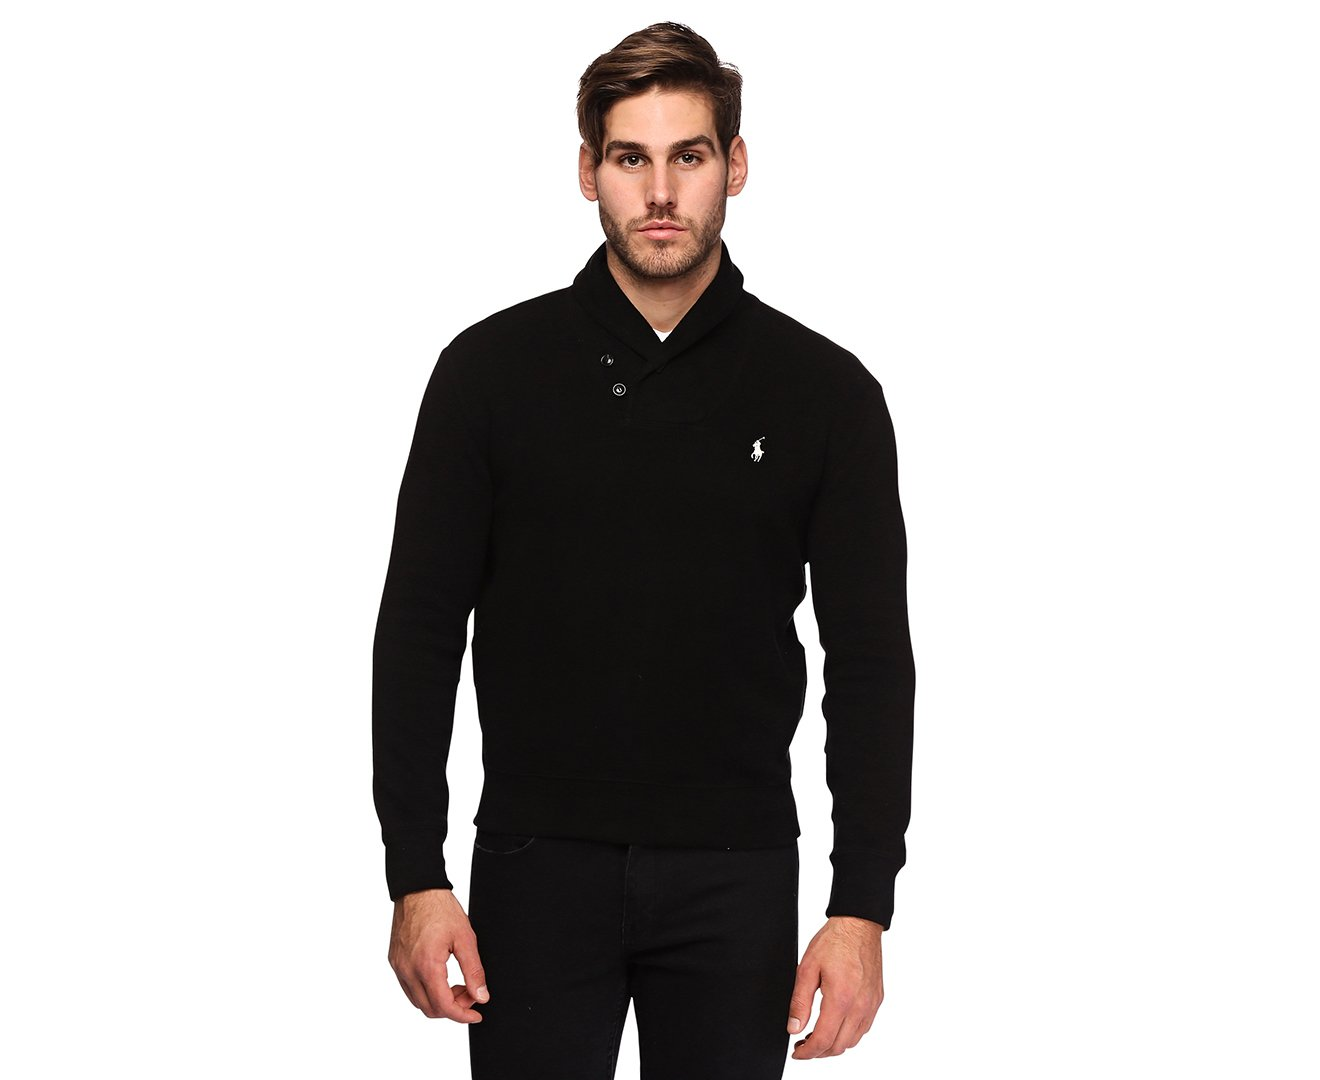 Polo Ralph Lauren Mens French Rib Shawl Neck Sweater (Medium, Polo Black) by Polo Ralph Lauren